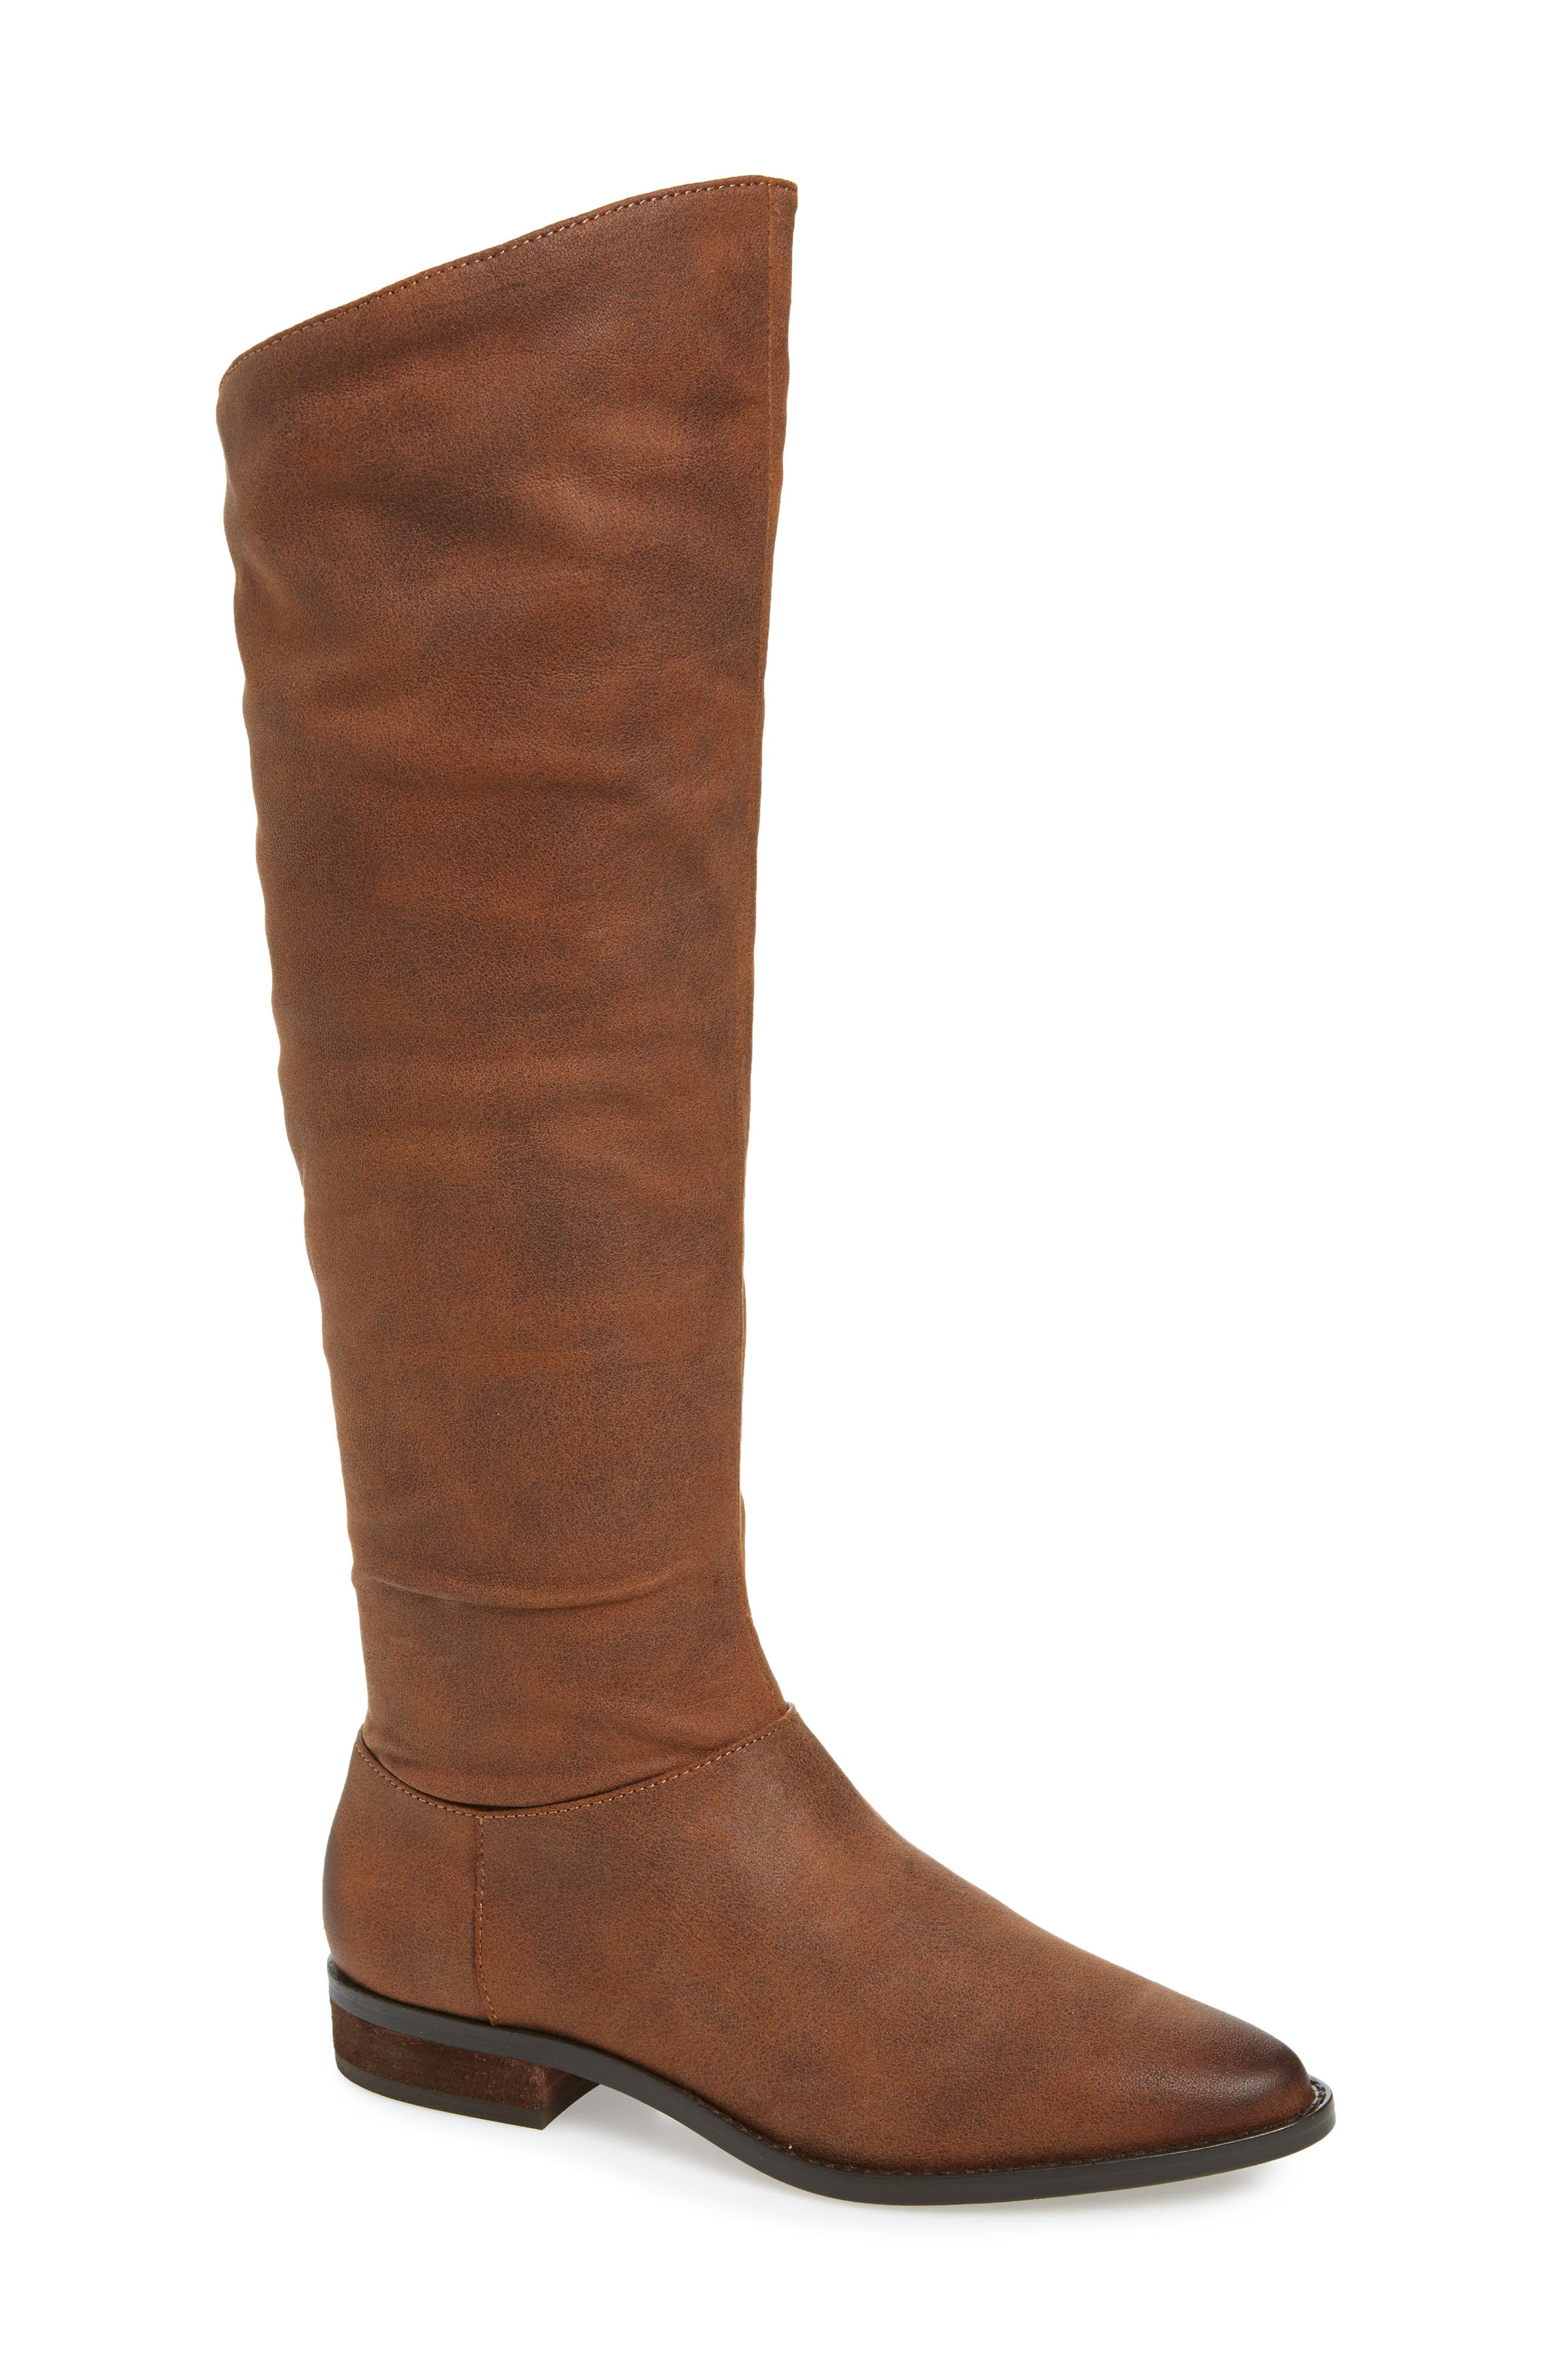 BAND OF GYPSIES Luna Over The Knee Boot in Brown Faux Leather